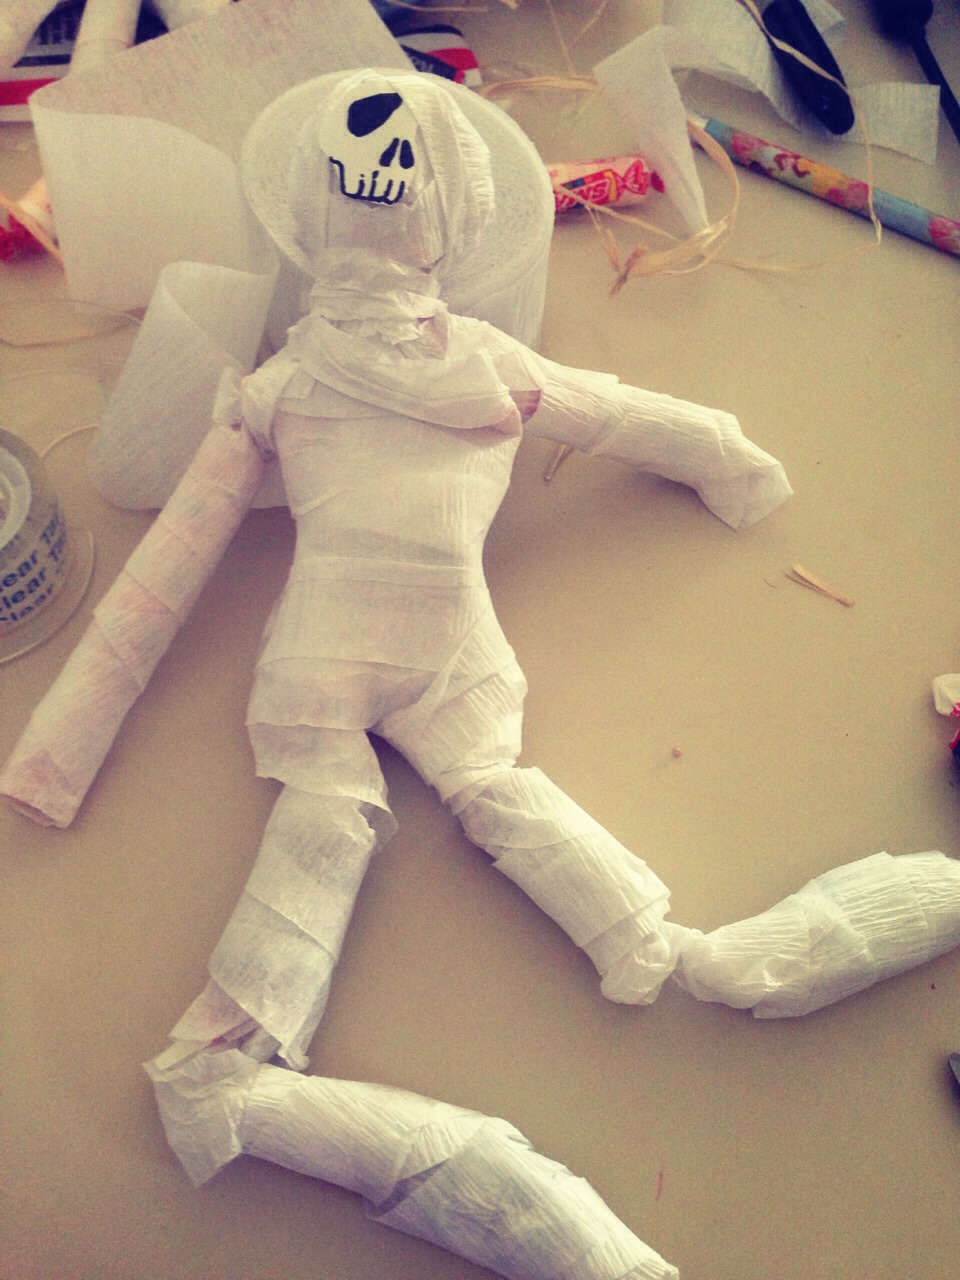 And your mummy is finished!